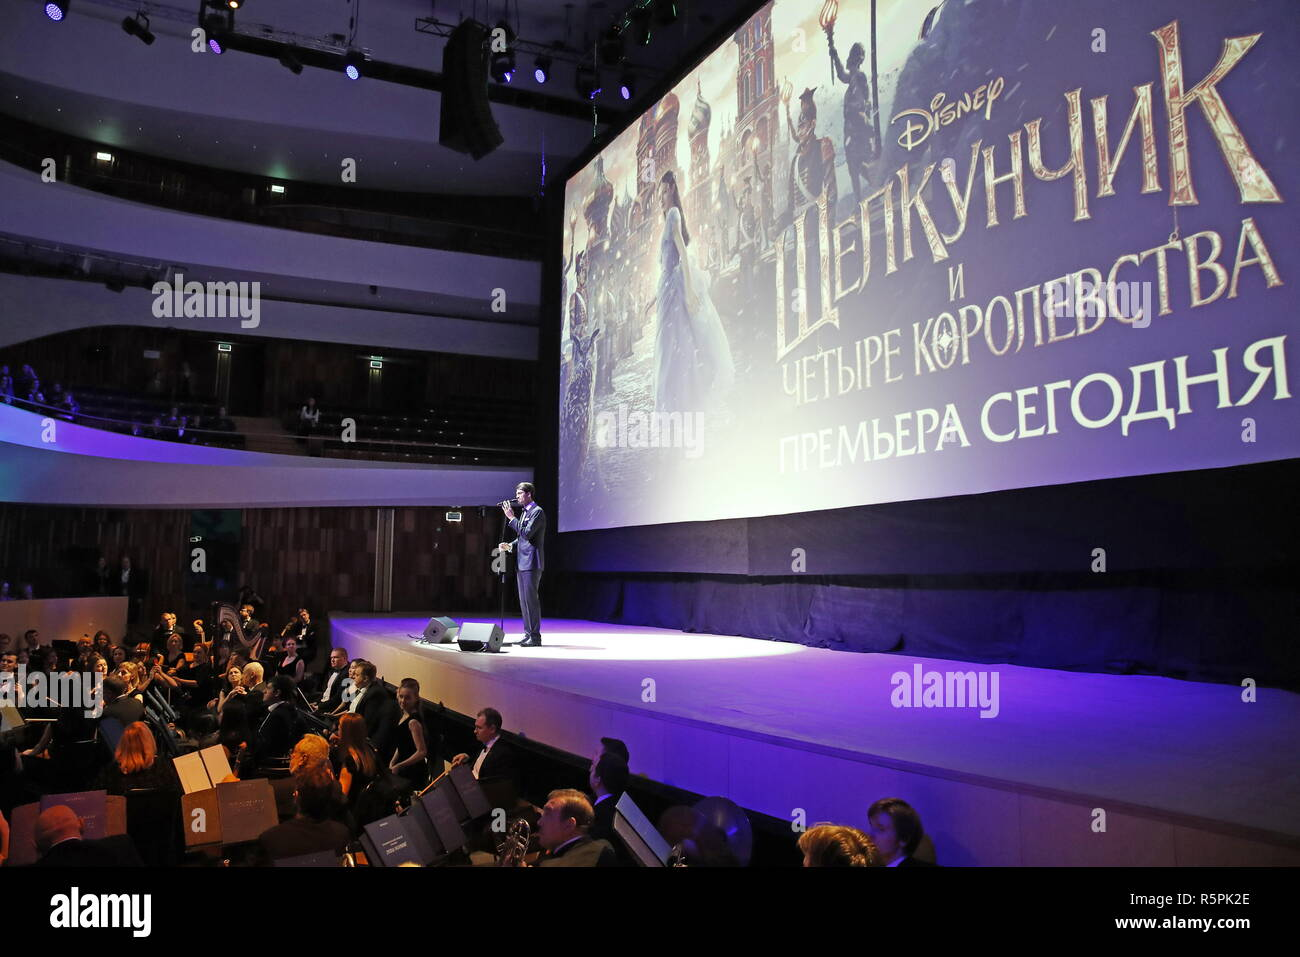 Moscow, Russia. 02nd Dec, 2018. MOSCOW, RUSSIA - DECEMBER 2, 2018: Italian tenor Matteo Bocelli addresses a pre-premiere screening of The Nutcracker and the Four Realms fantasy adventure film at the Zaryadye Concert Hall. Artyom Geodakyan/TASS Credit: ITAR-TASS News Agency/Alamy Live News - Stock Image